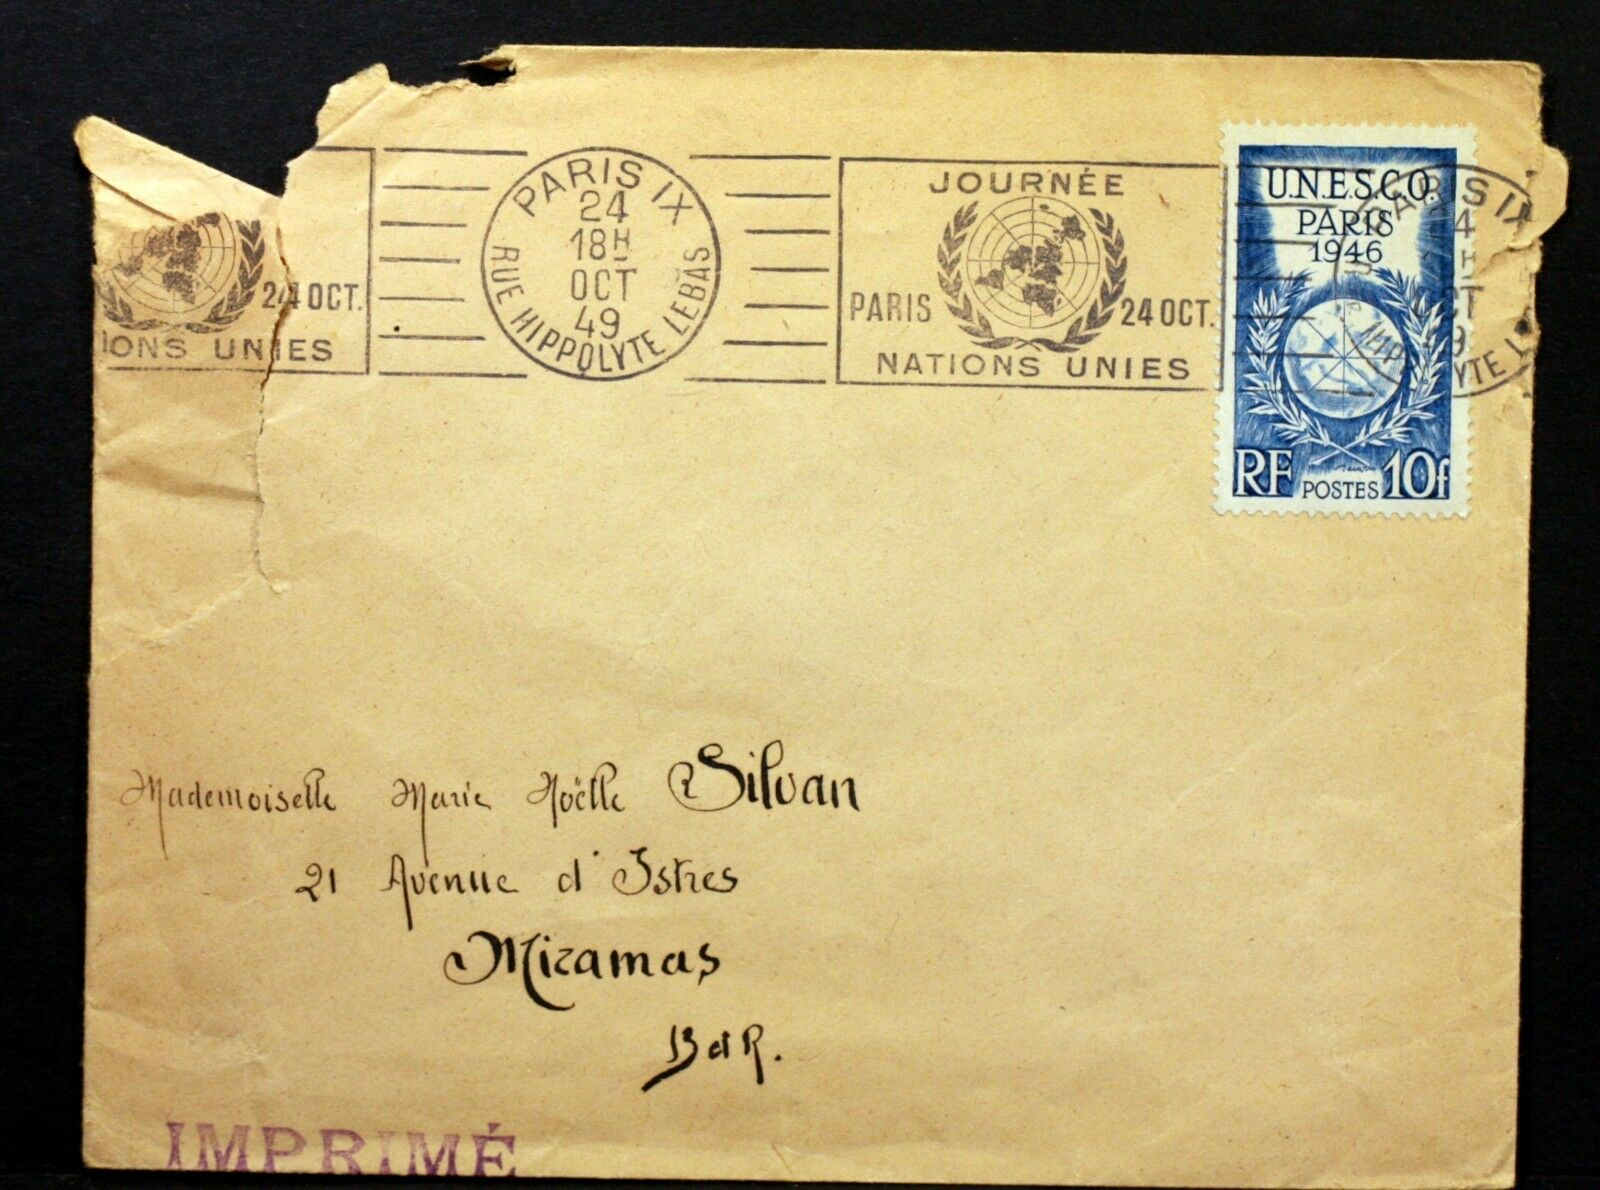 France - Scott #572 (1946). This stamp was released to xommemorate the first General Conference of UNESCO, held in Paris from November to December 1946. This rather ratty-looking cover was posted on United Nations Day, October 24, 1949, and bears a Paris slogan cancellation making the occasion.